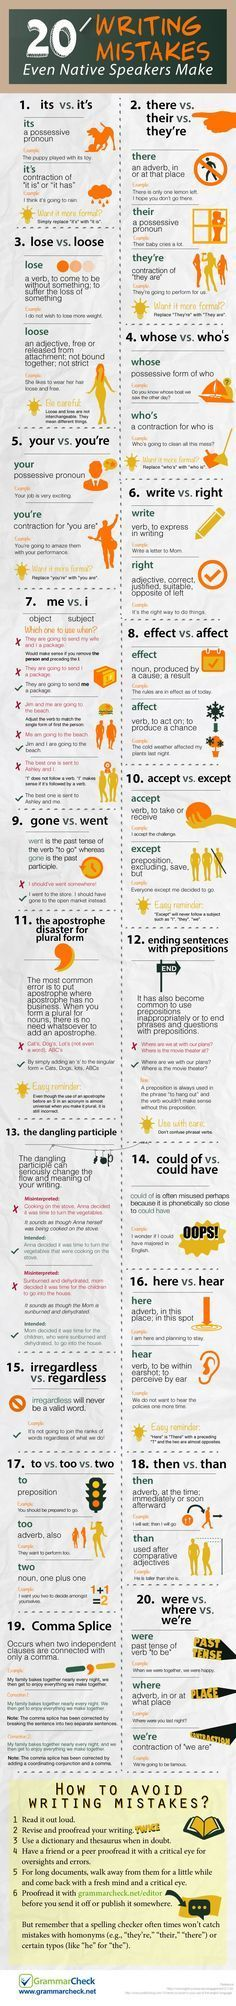 20 Writing Mistakes Even Native Speakers Make /learn English / english grammar / english vocabulary